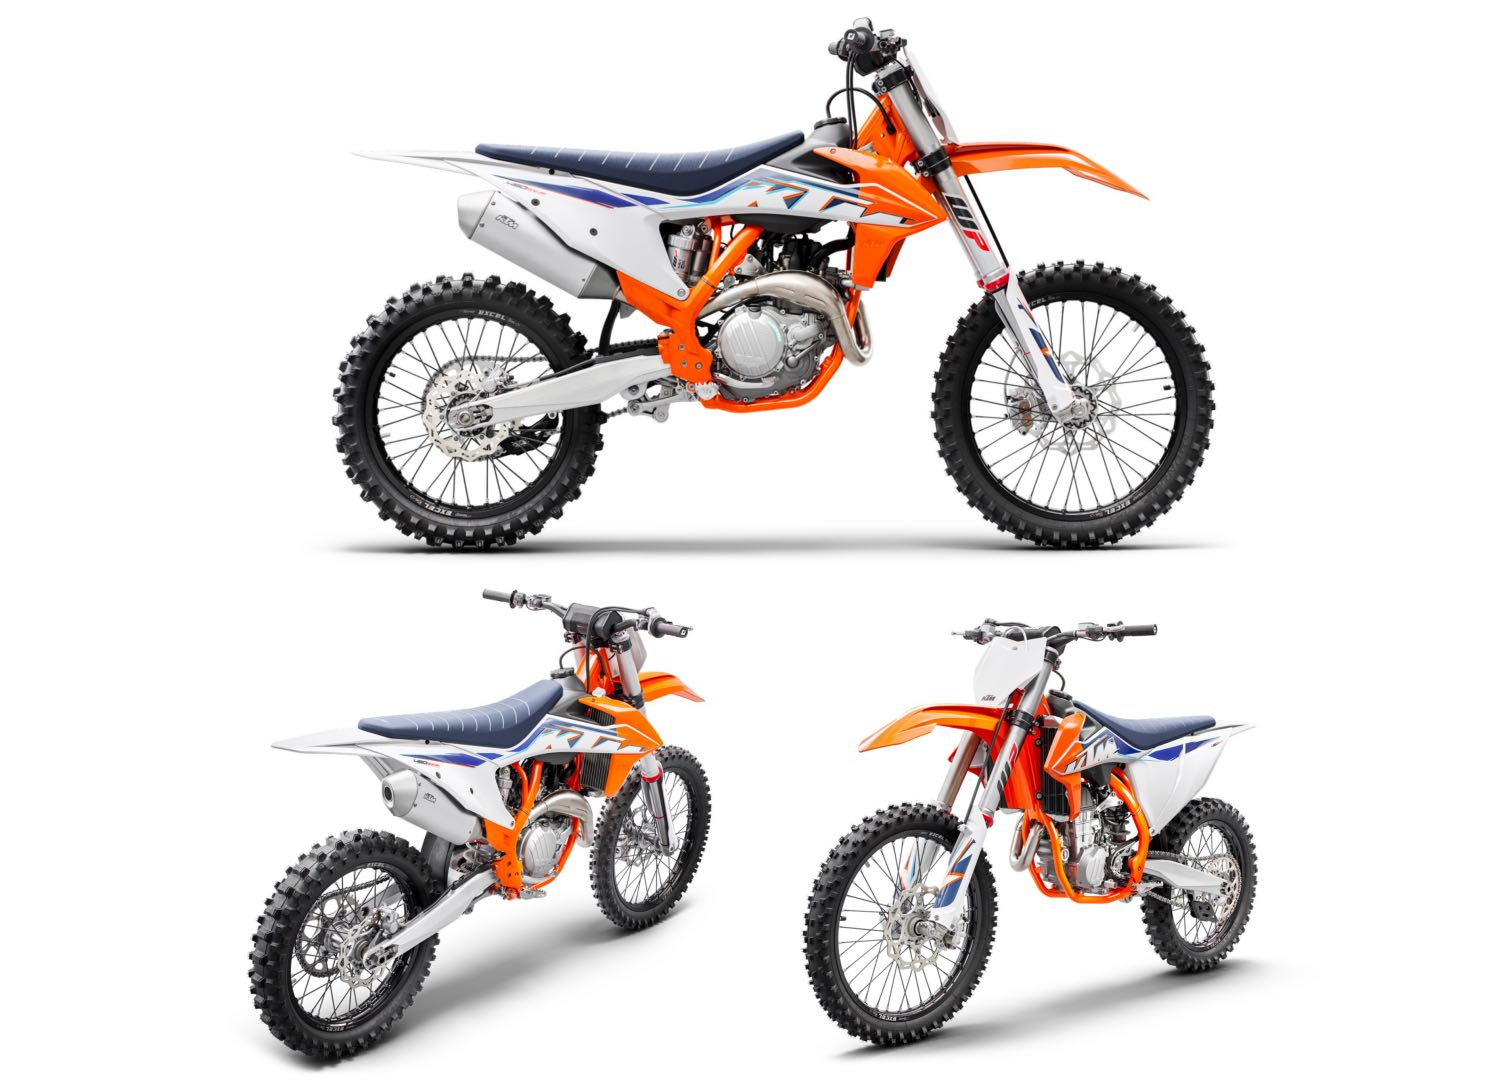 Introducing the 2022 KTM 450 SX-F